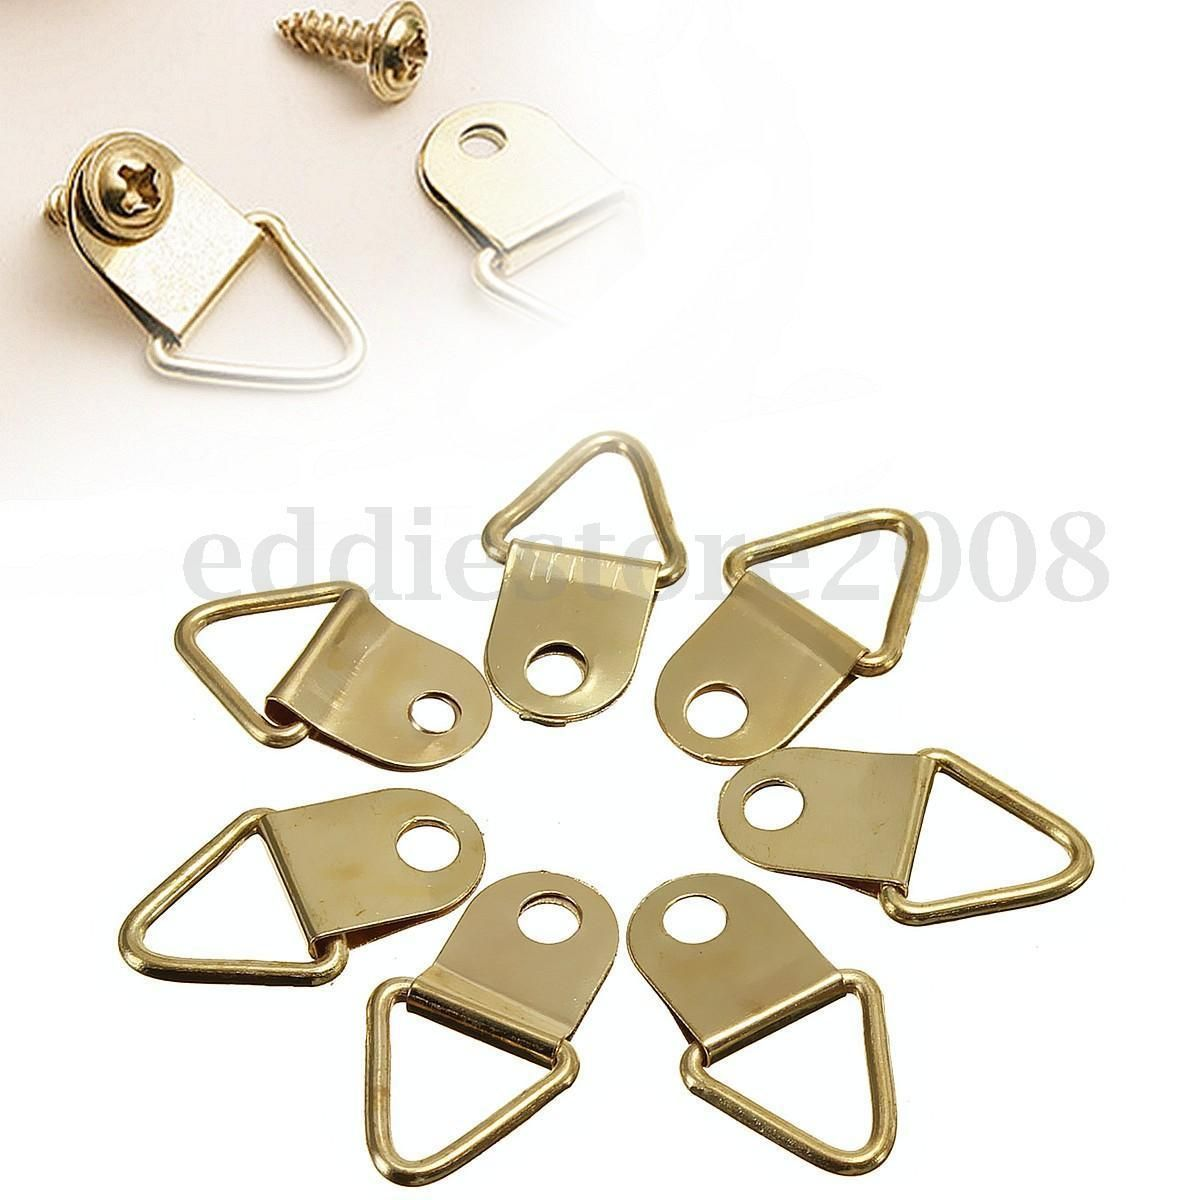 100pcs / Pack Picture Frame Hanging Triangle D Rings Frames Hanger Hooks Gold UK | eBay